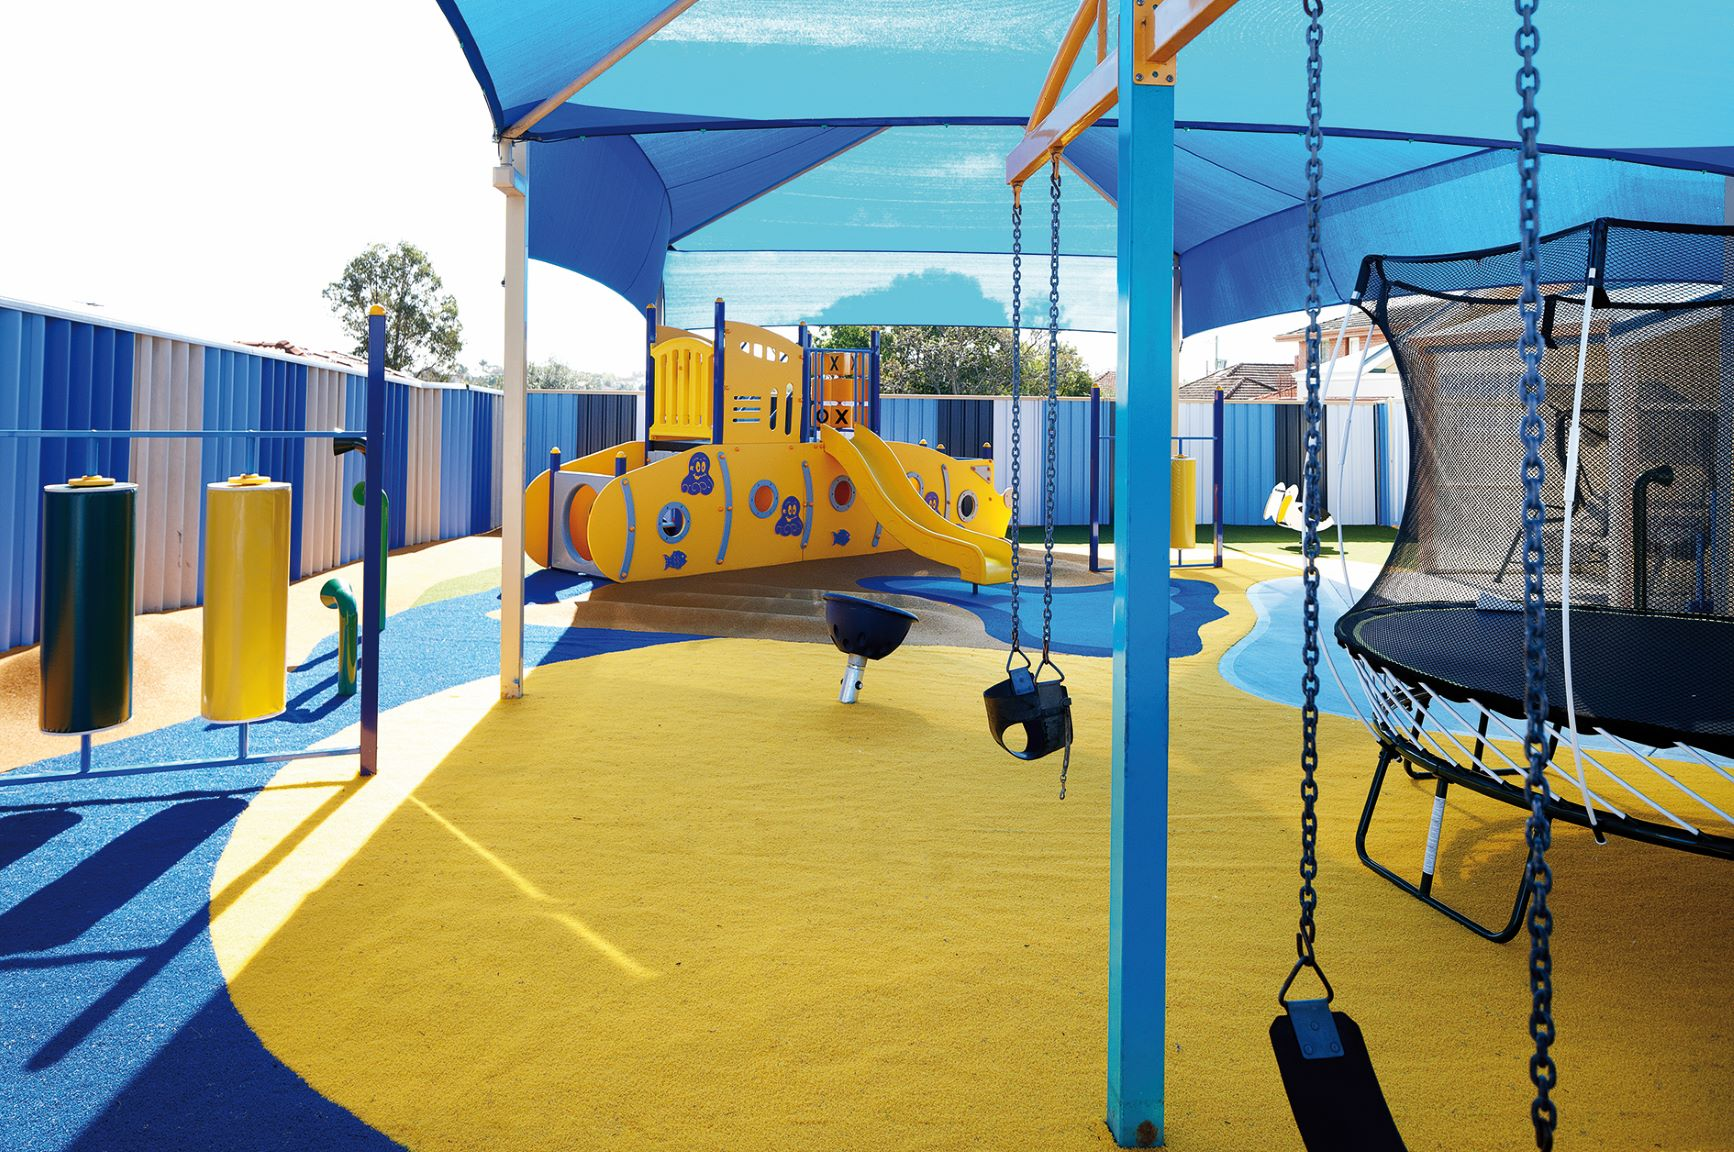 Playground located at the Bayswater short term accommodation facility